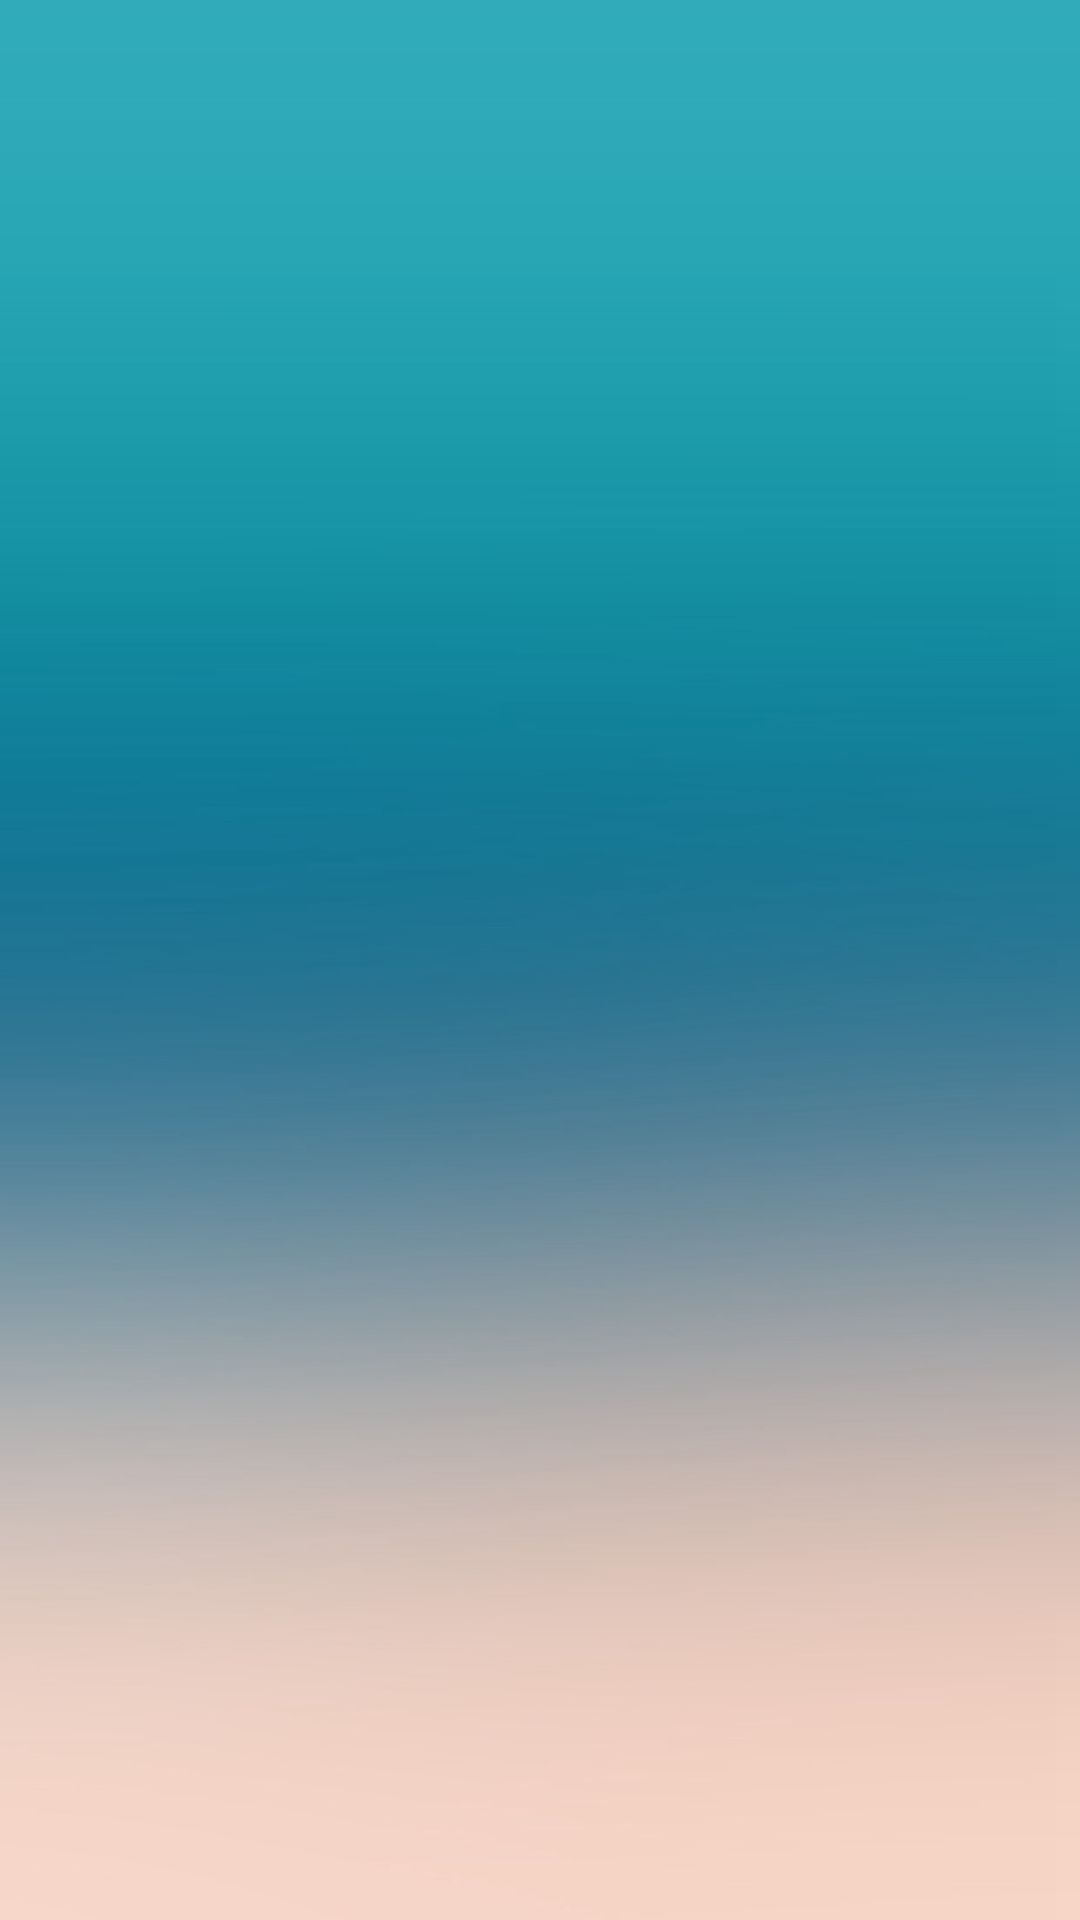 Bedroom Iphone Background Blue And Beige Gradation Cellphone Wallpapers Pantalla